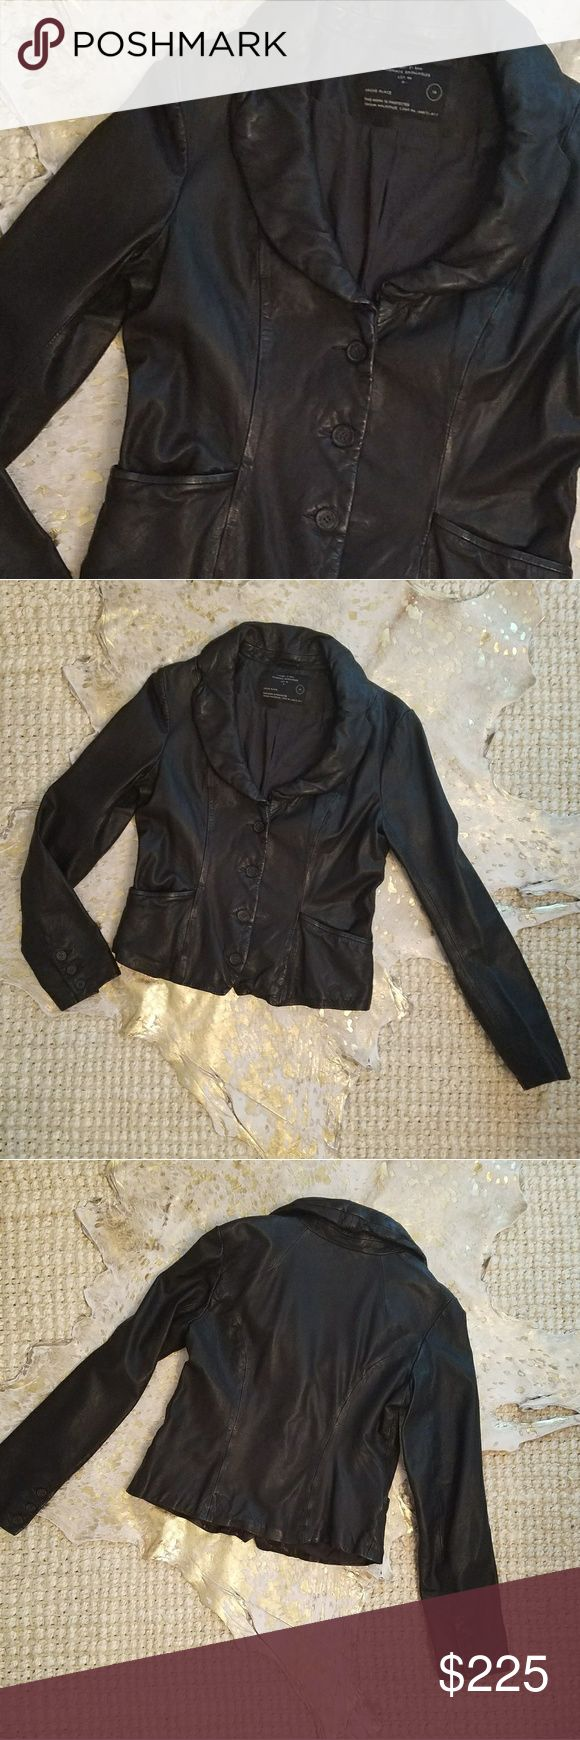 Allsaints Ayala Leather Jacket This jacket is tailored beautifully! It's cut more like a blazer, very flattering! Goes with everything! The color is black but sometimes in the right light looks very dark brown.  UK Size 14 - US Size 10  Excellent Condition: the leather was recently cleaned and conditioned. I'm happy to answer any questions or provide additional photos! Sorry No Trades. All Saints Jackets & Coats